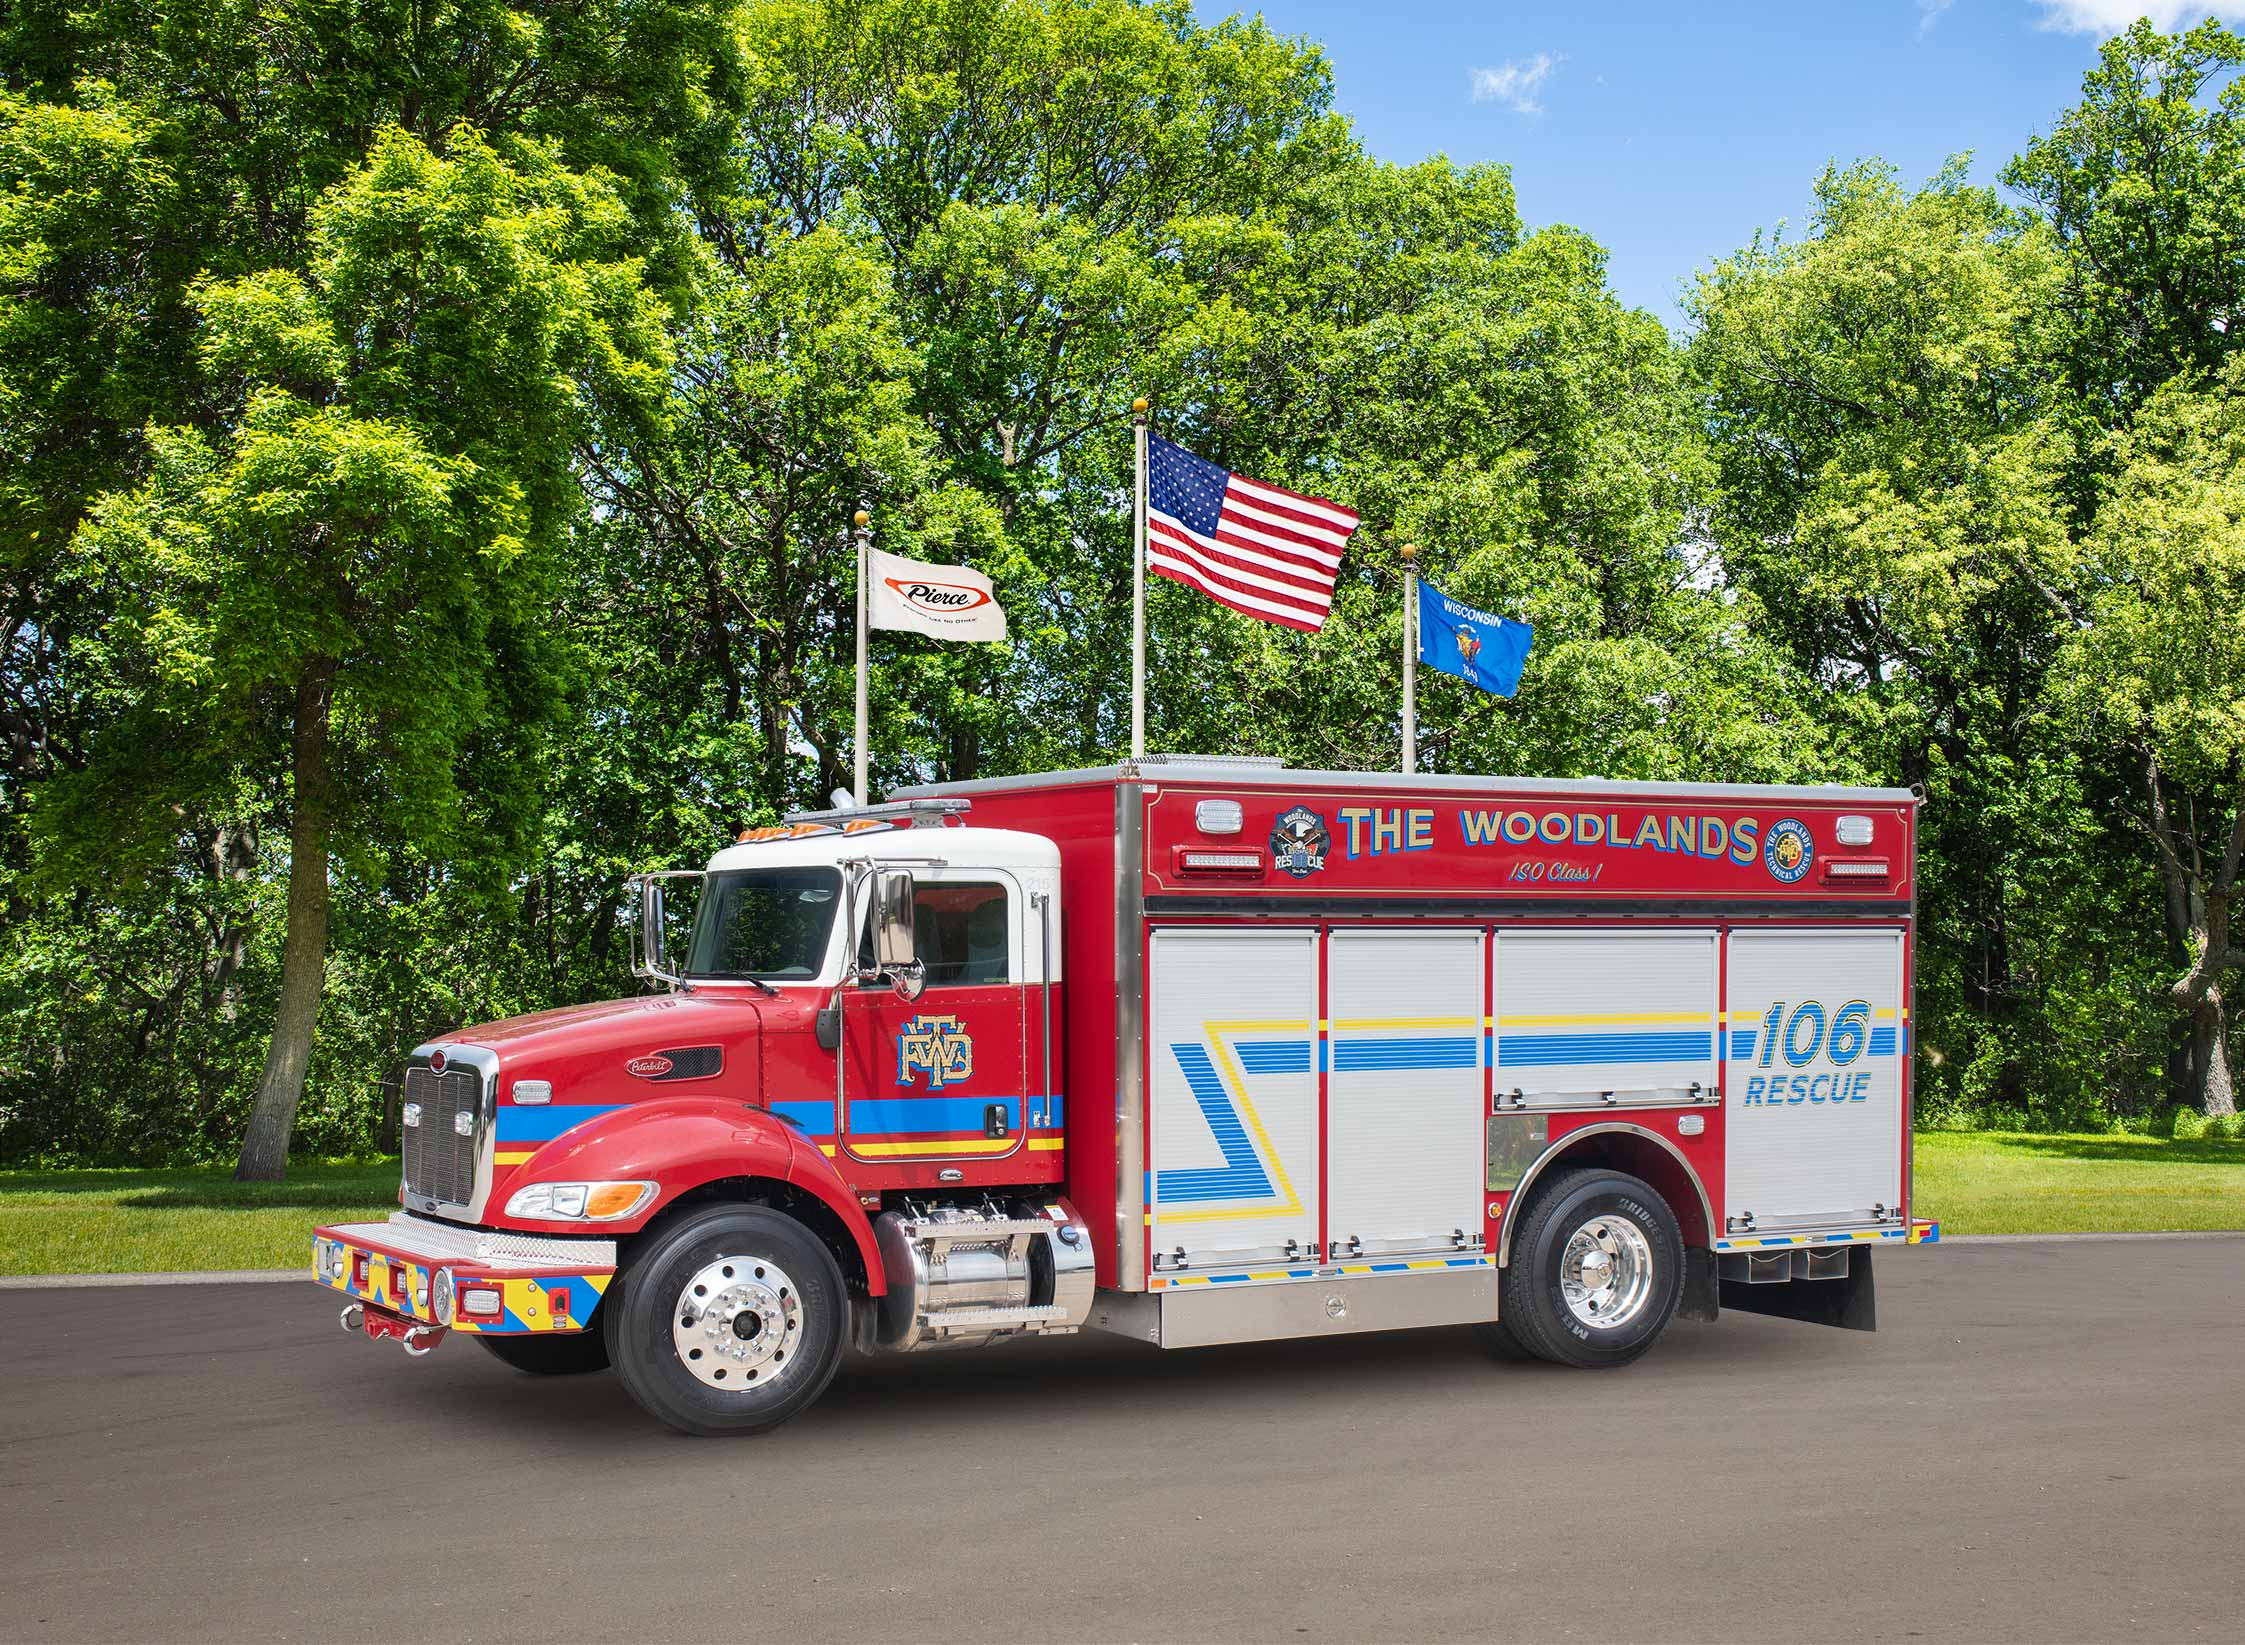 The Woodlands Township - Rescue